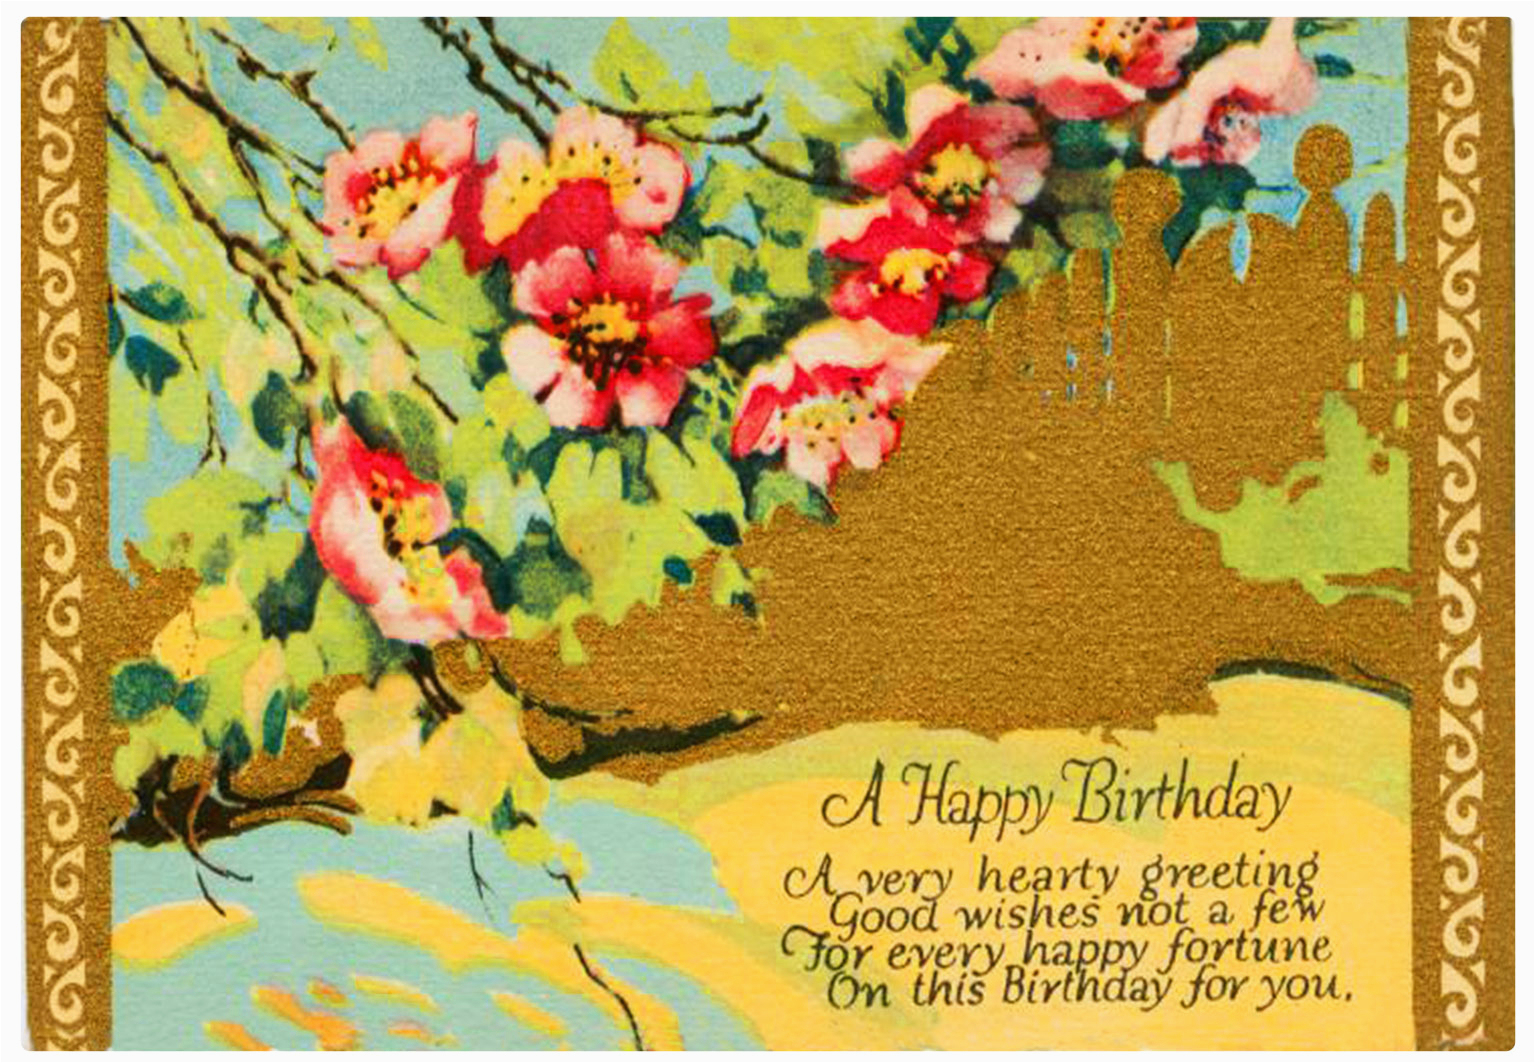 Make Birthday Cards Online For Free | Birthdaybuzz - Make Your Own Printable Birthday Cards Online Free